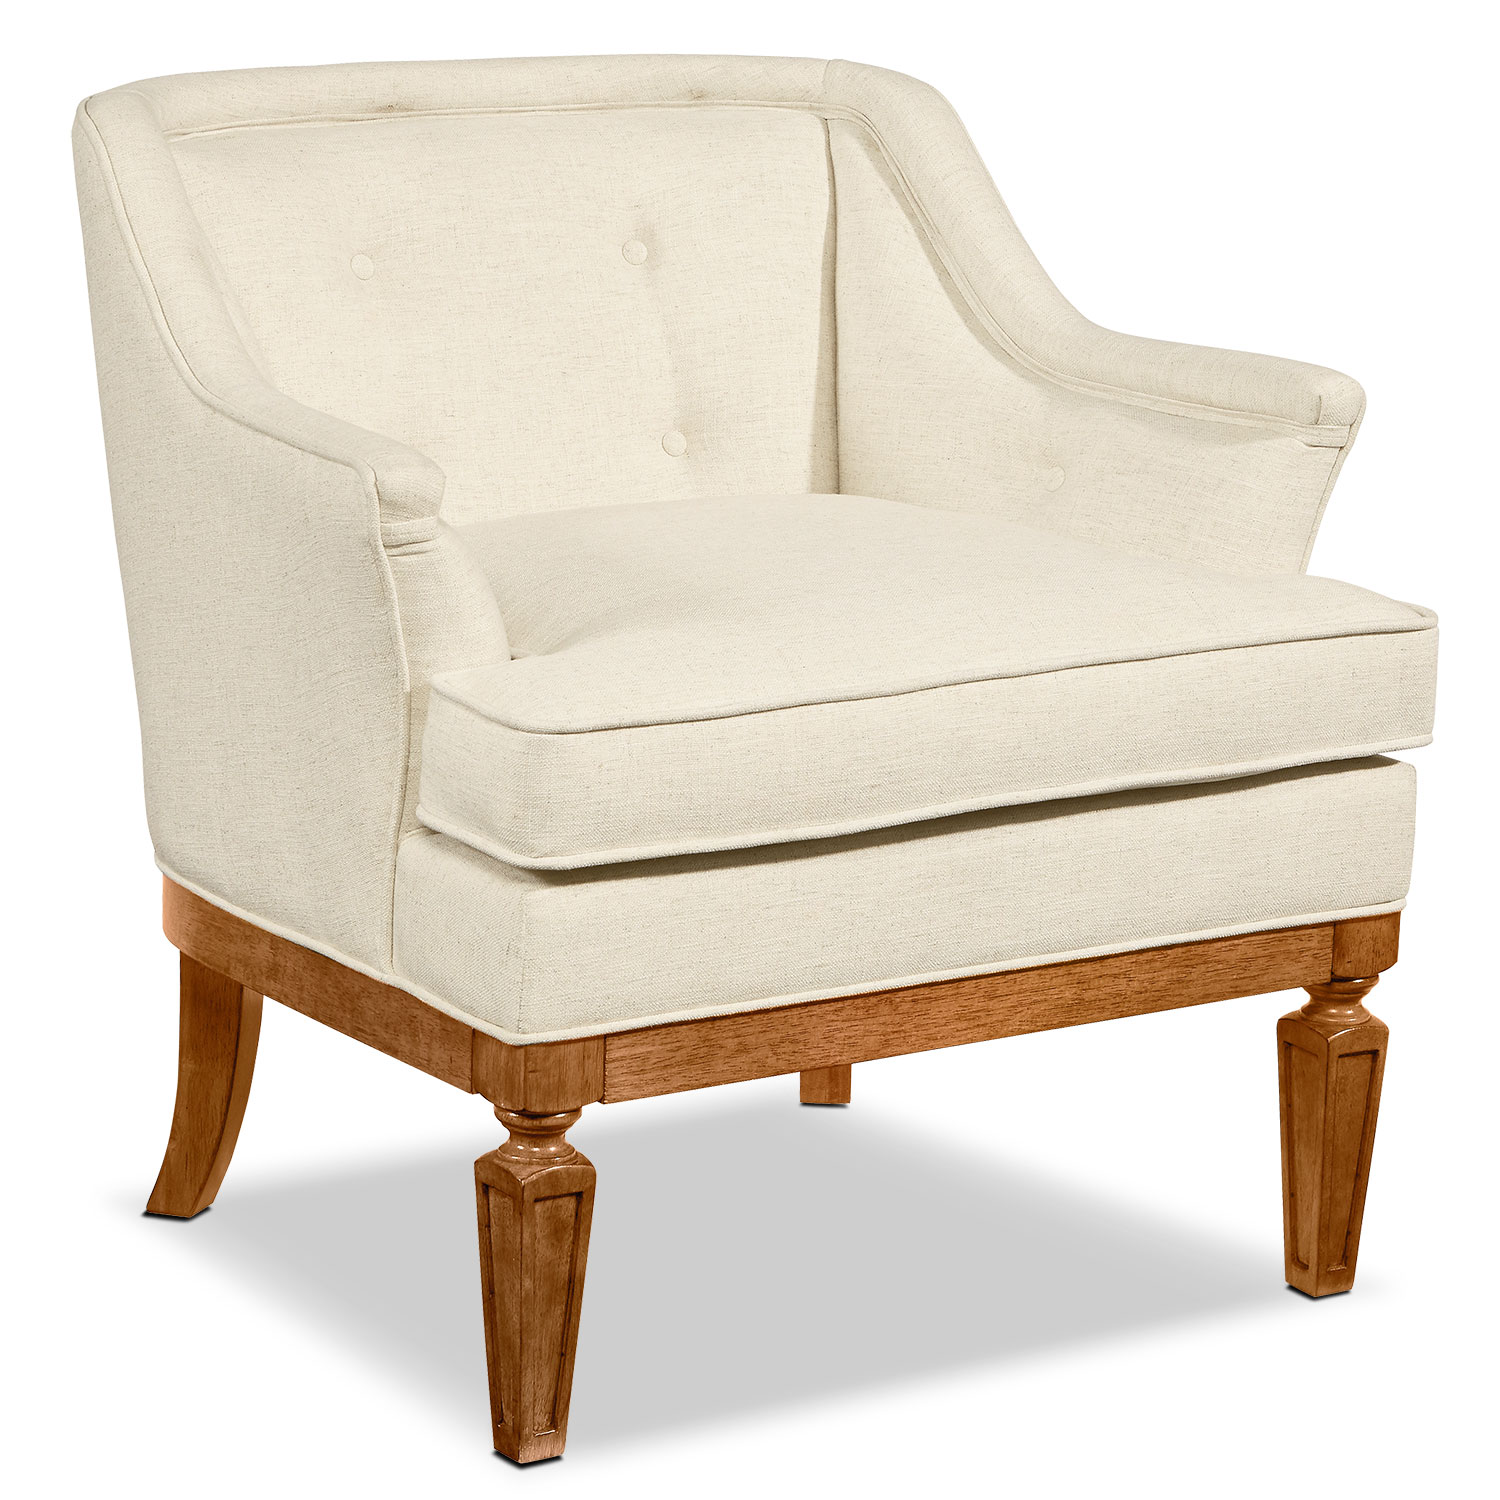 Cotillion Accent Chair - Ivory